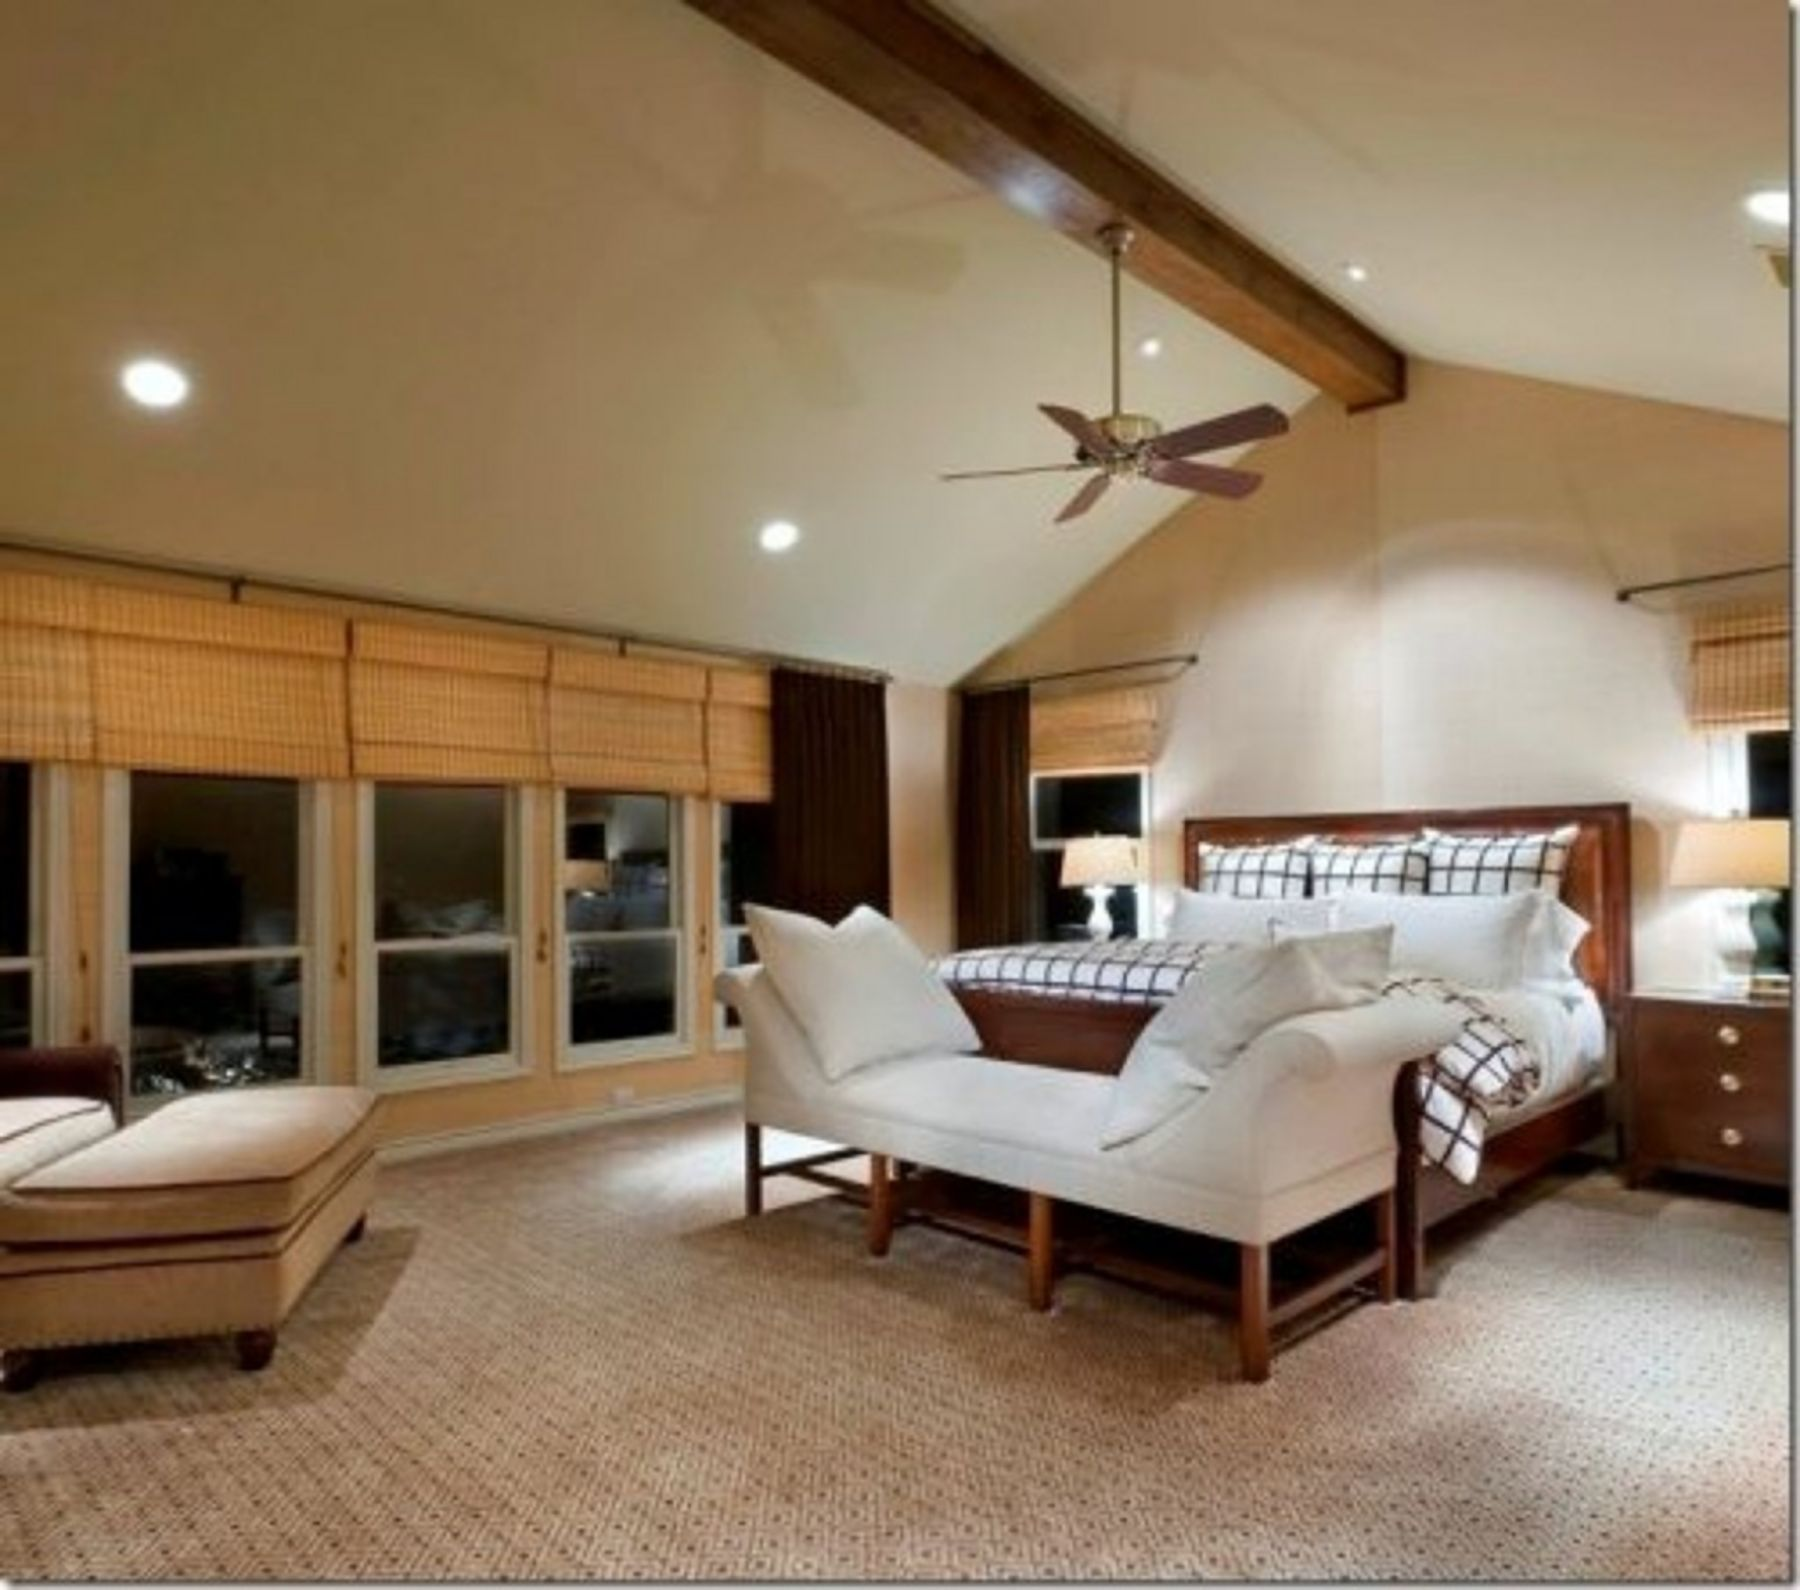 20 Best Garage Remodel Ideas To Be Amazing Room Convert Garage To Bedroom Garage Bedroom Conversion Garage Renovation